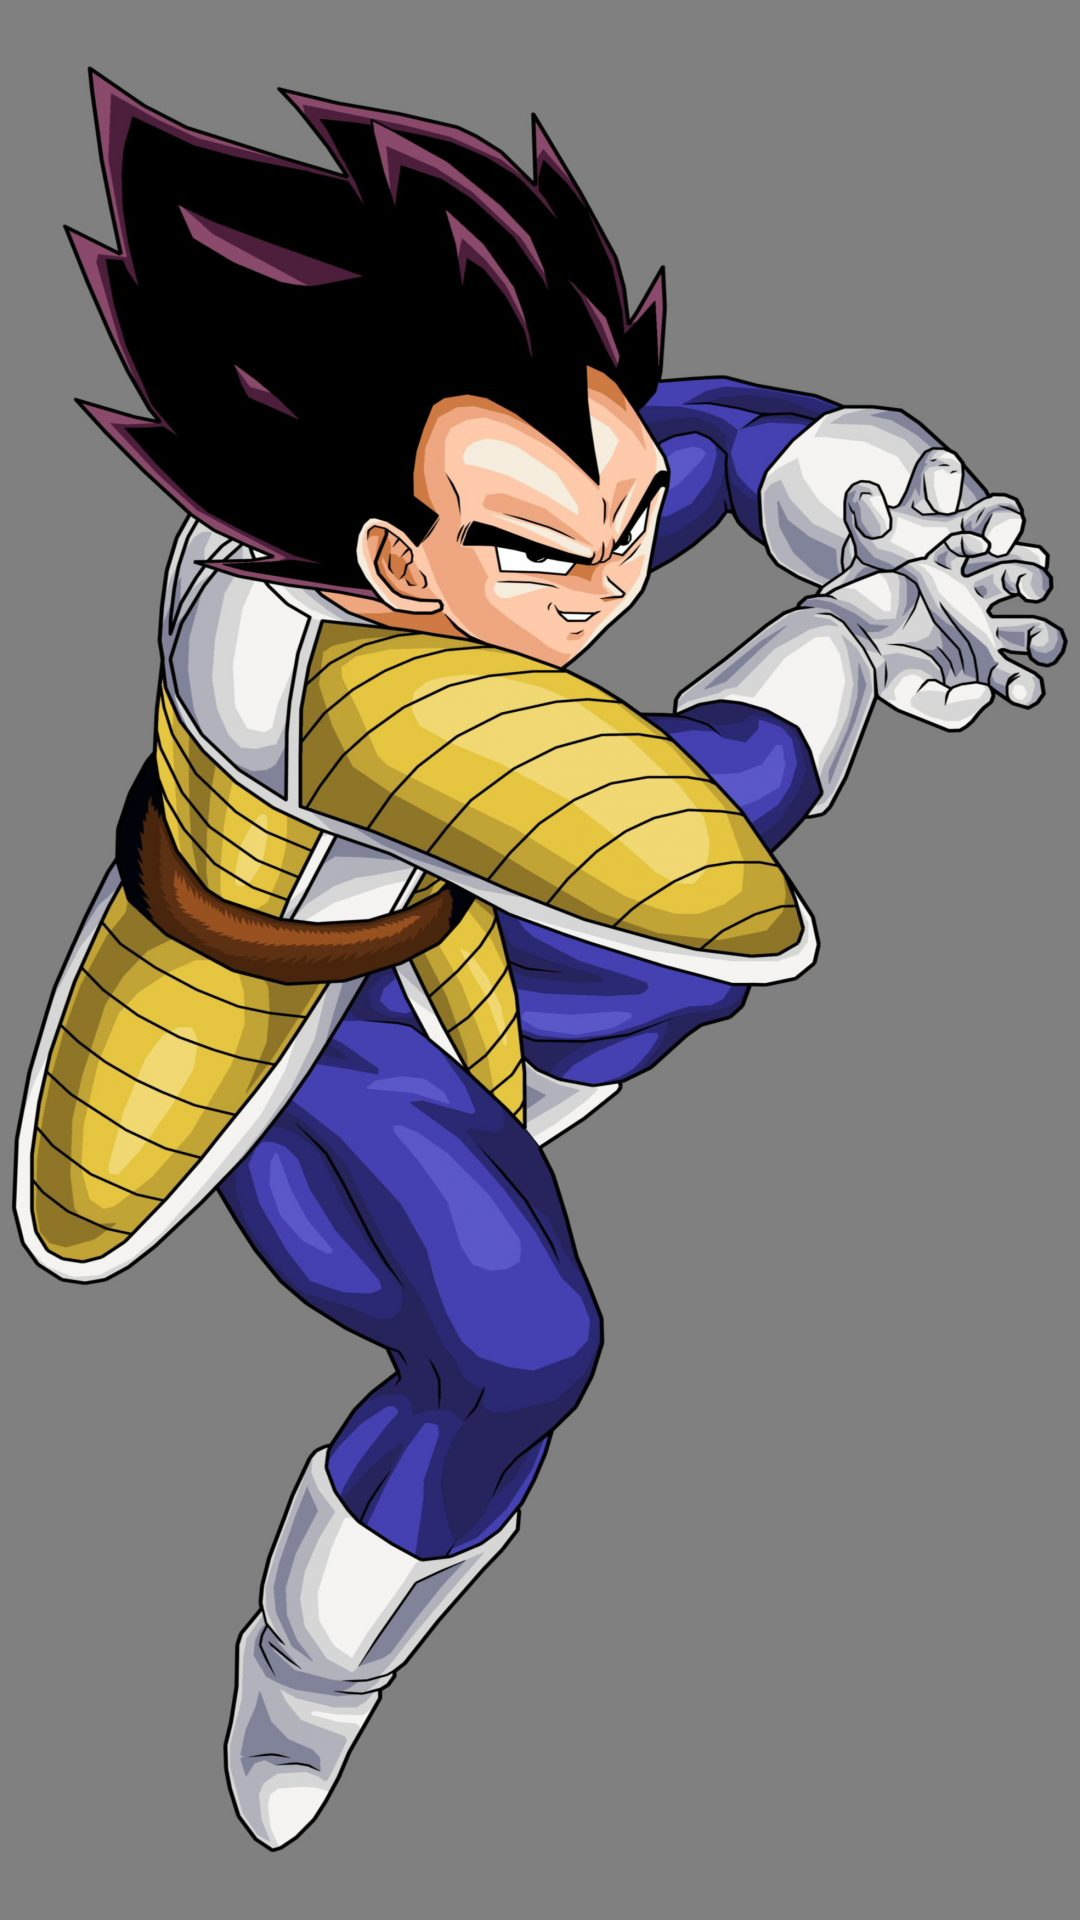 Vegeta in saiyan battle armor dbz 4k uhd wallpaper - Vegeta wallpapers for mobile ...